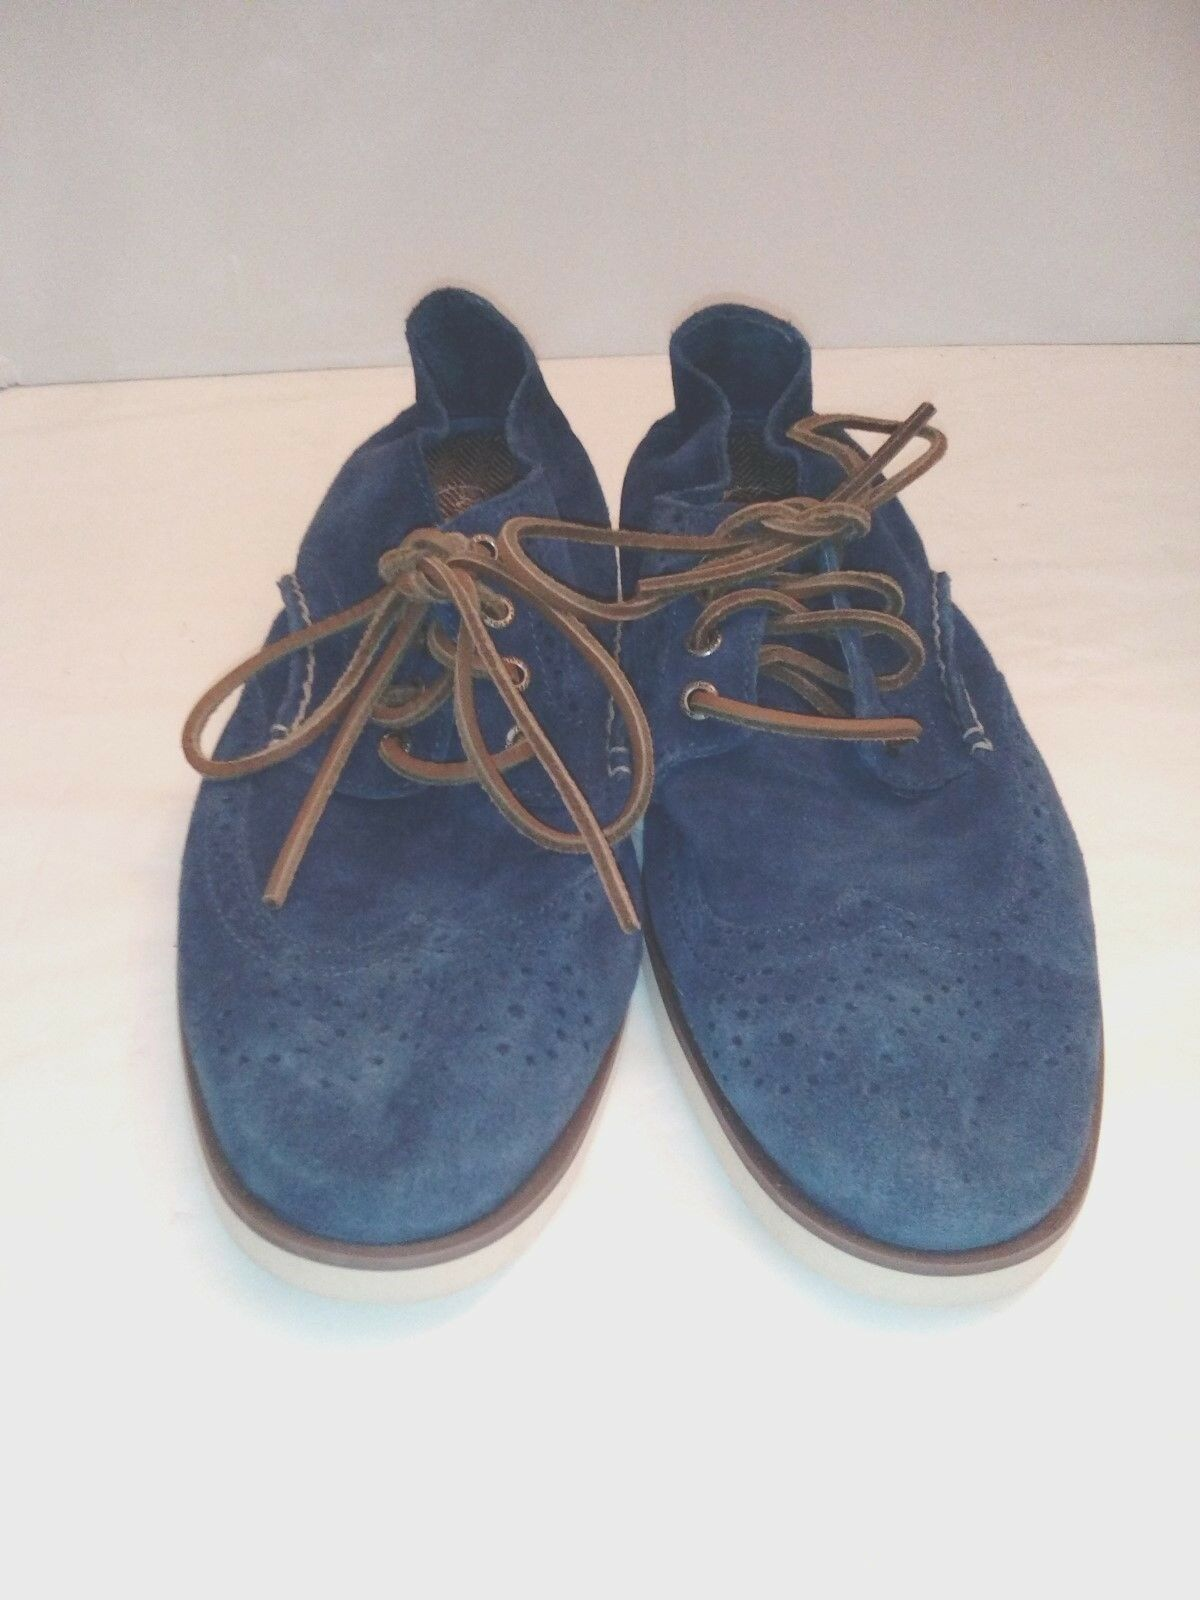 Sperry Top Sider bluee Leather Mens shoes Size 10.5  0578272